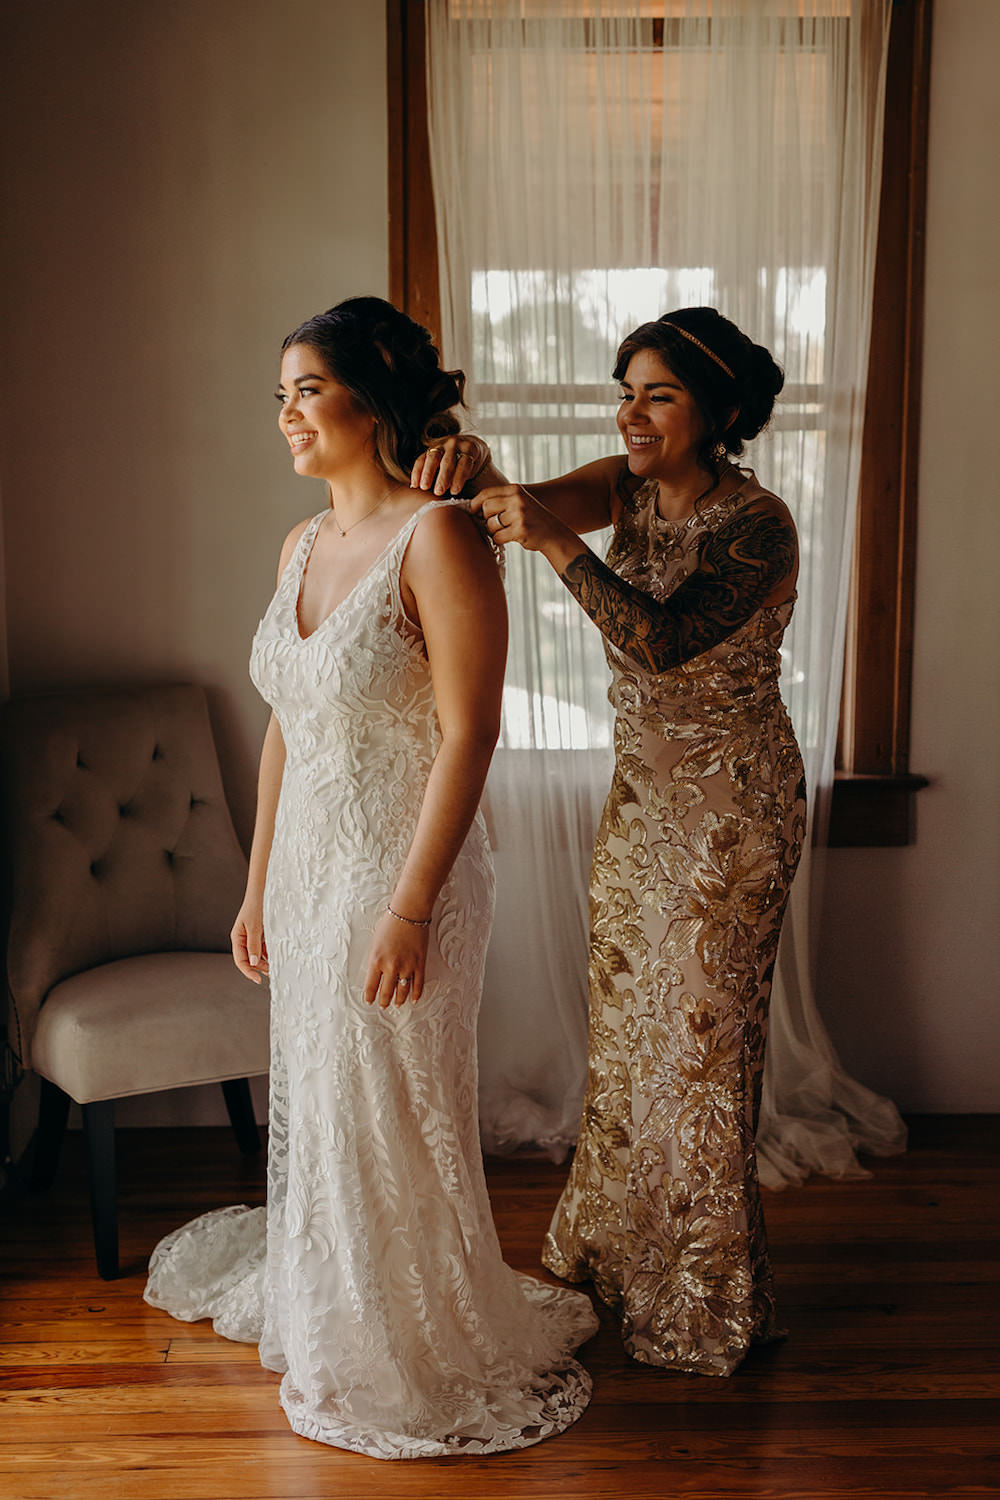 Bride Bridal Dress Gown Fit Flare Lace Willowby Watters Orlando Wedding Dani Nichol Photography